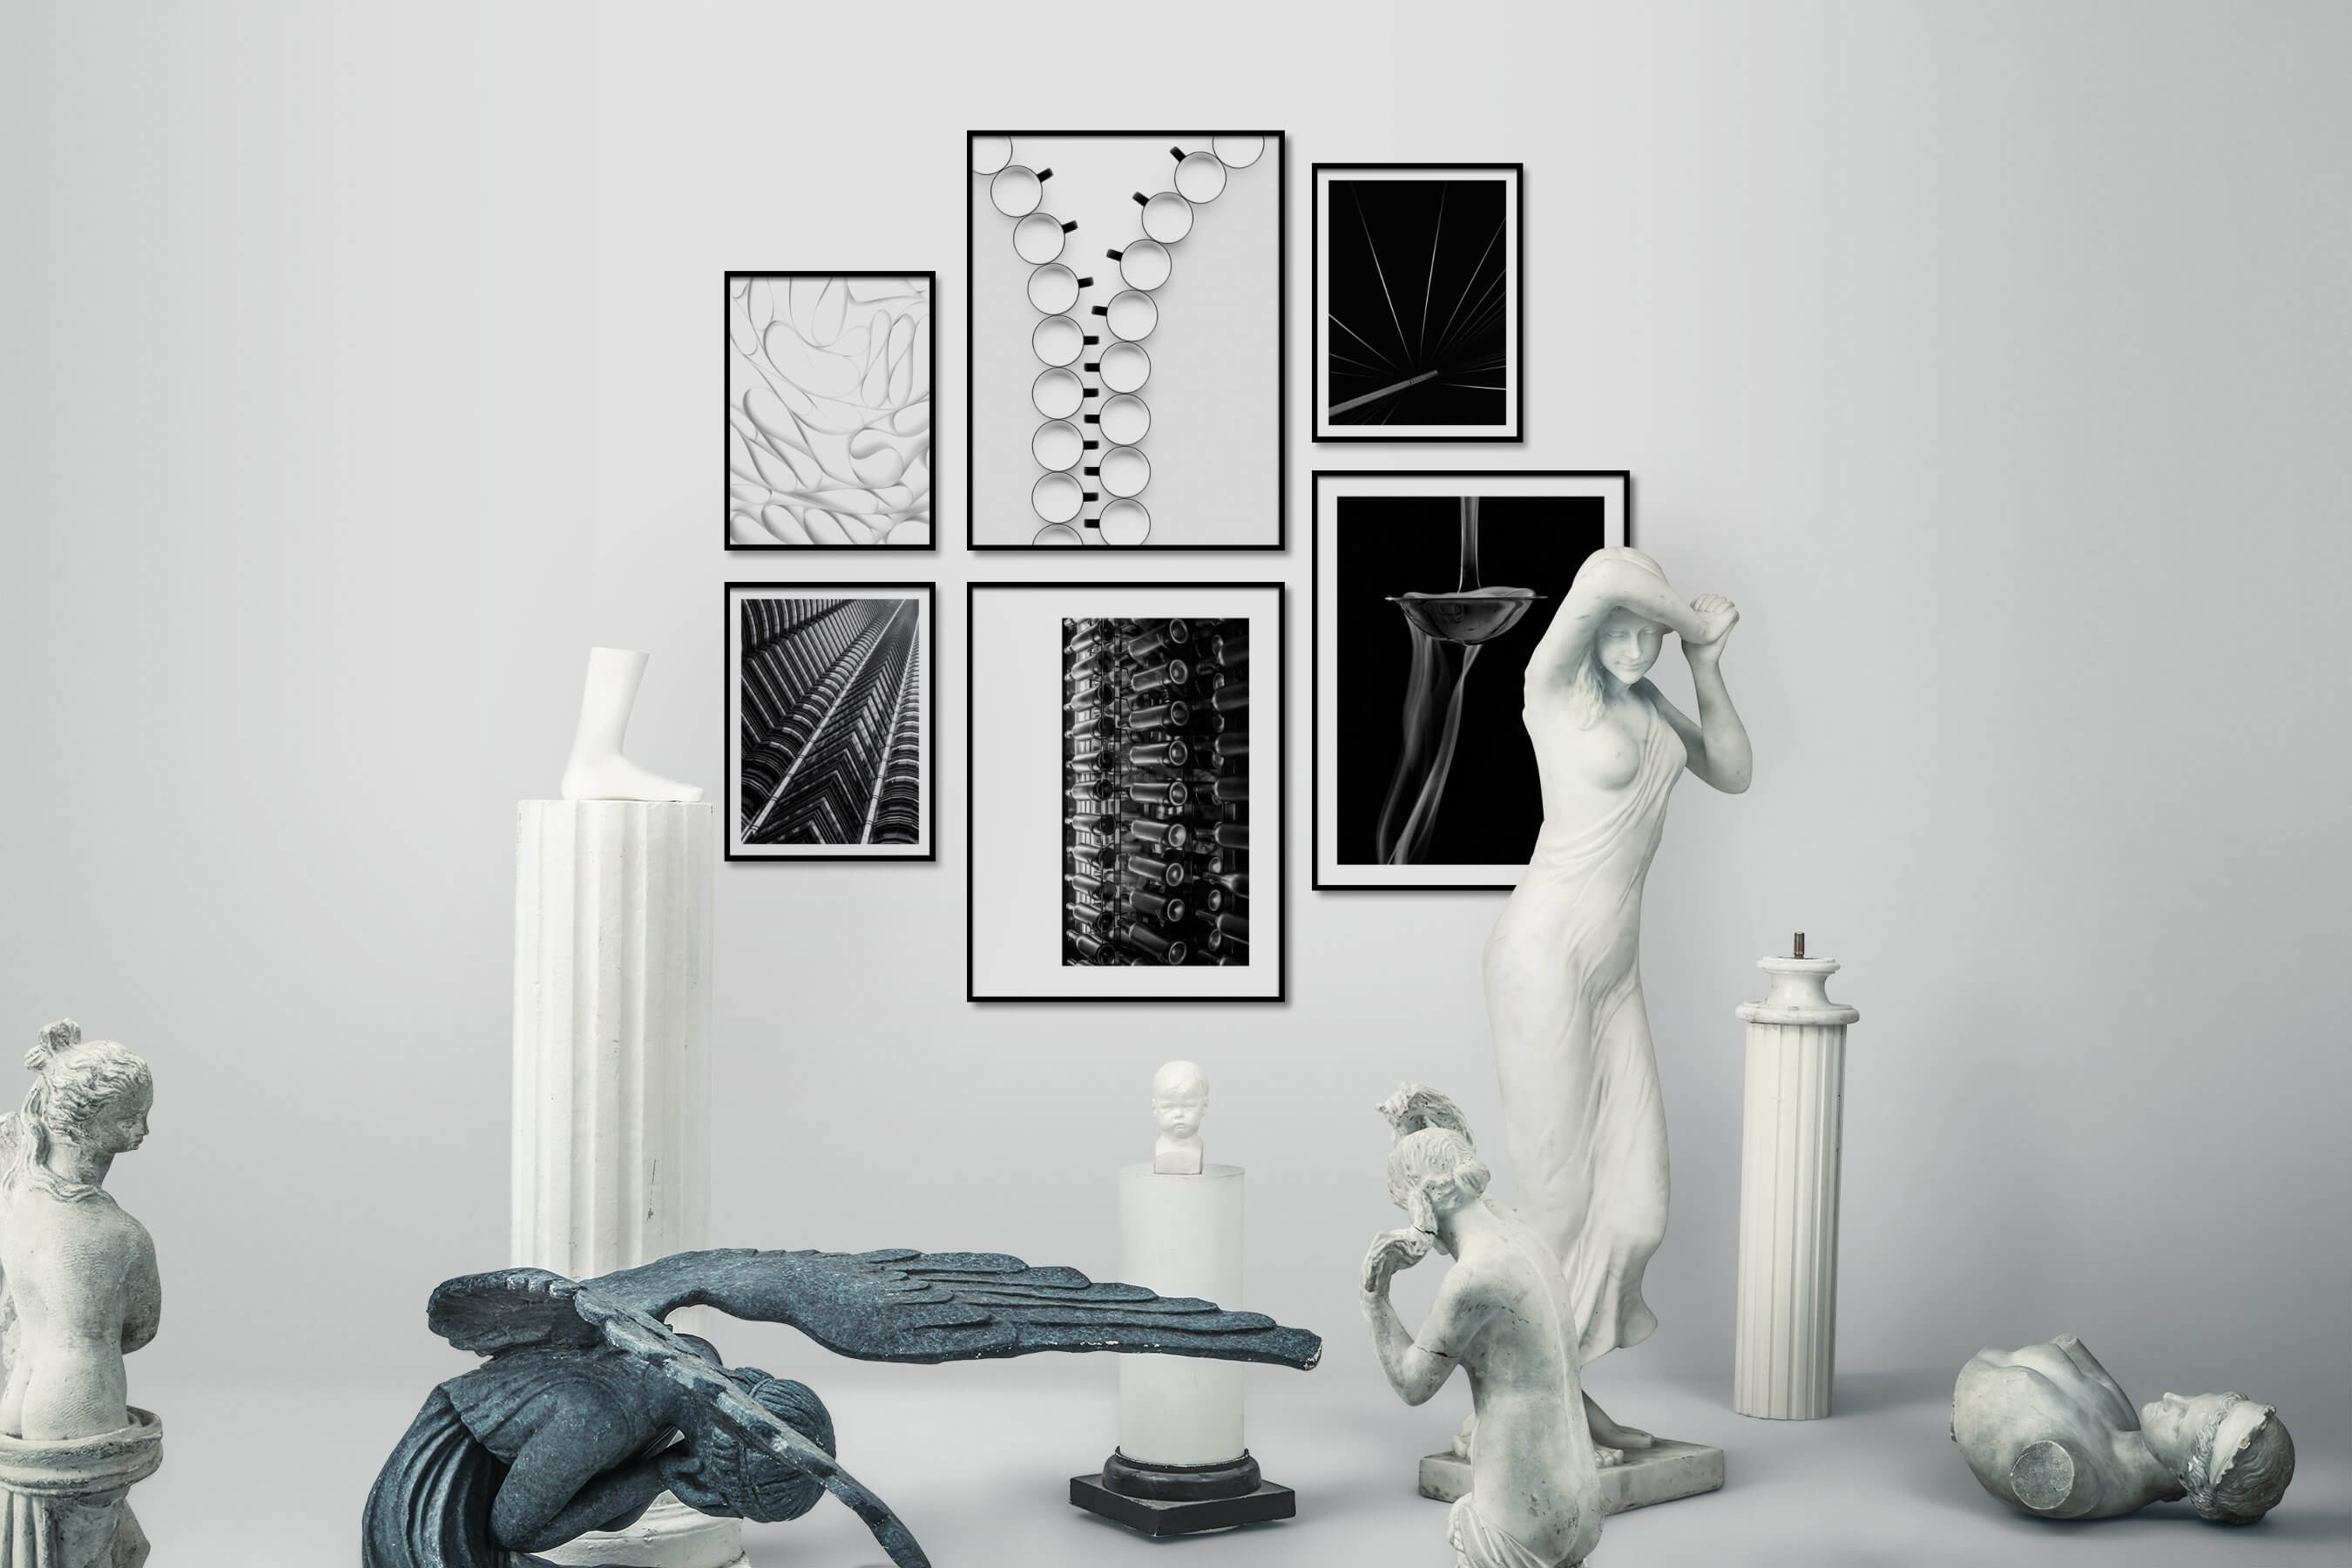 Gallery wall idea with six framed pictures arranged on a wall depicting Black & White, For the Moderate, Bright Tones, For the Minimalist, For the Maximalist, and City Life